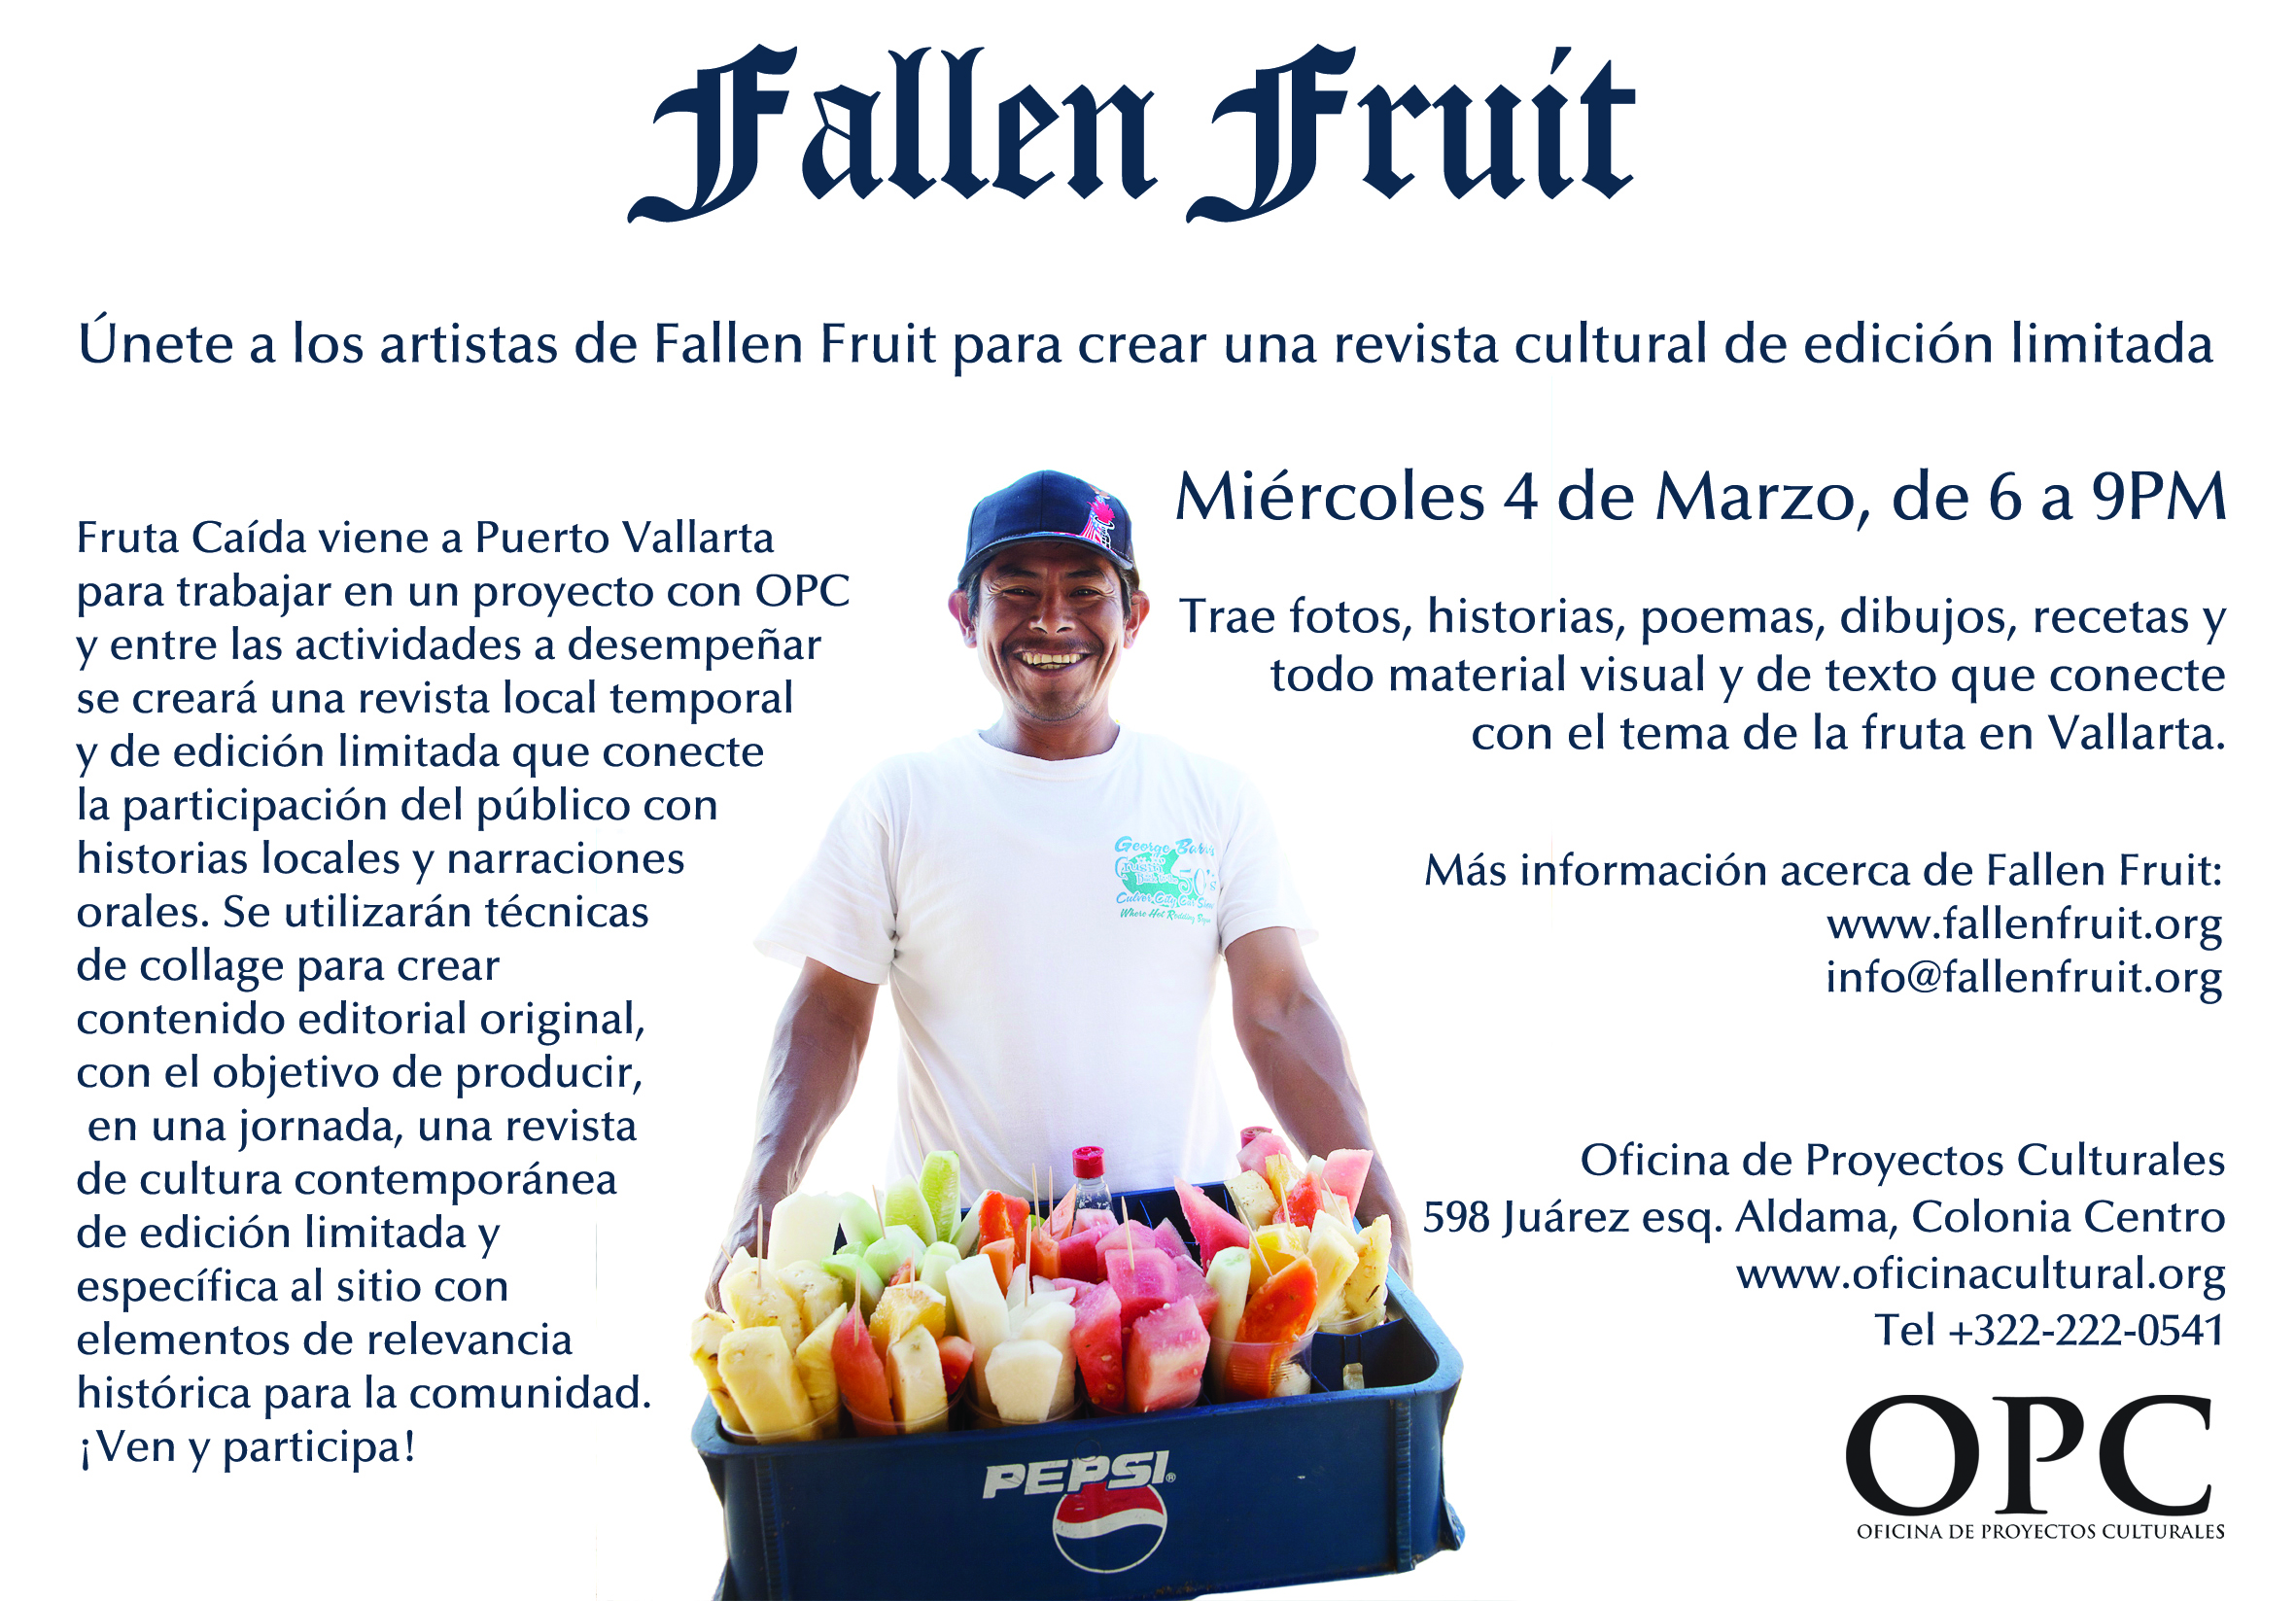 fallenfruitevitespanish copy2